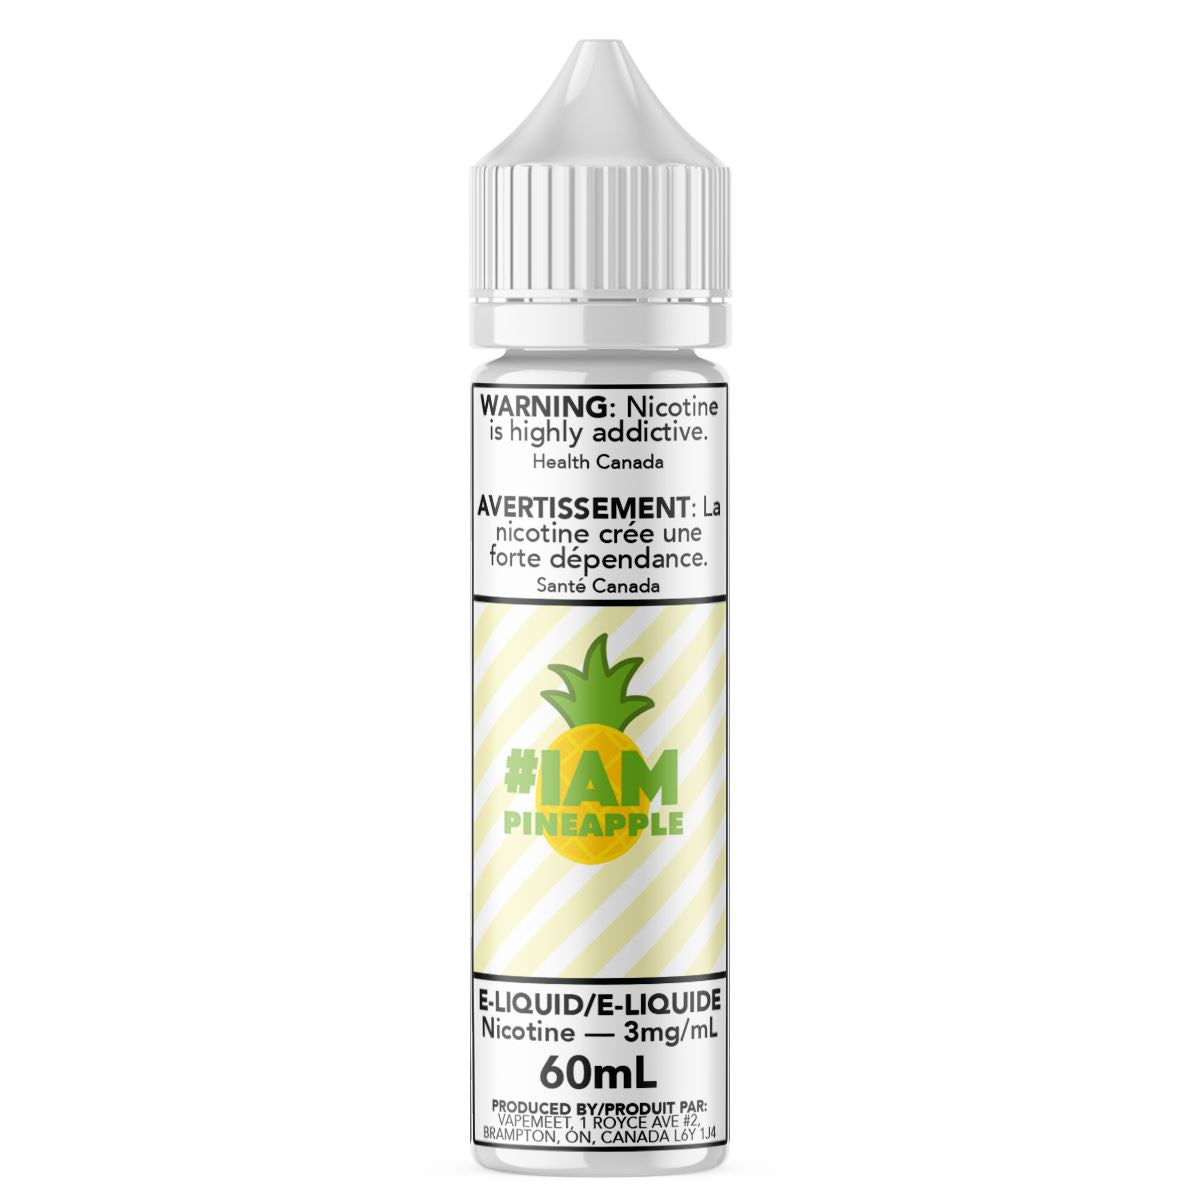 #IAM - Pineapple E-Liquid #IAM 60mL 0 mg/mL